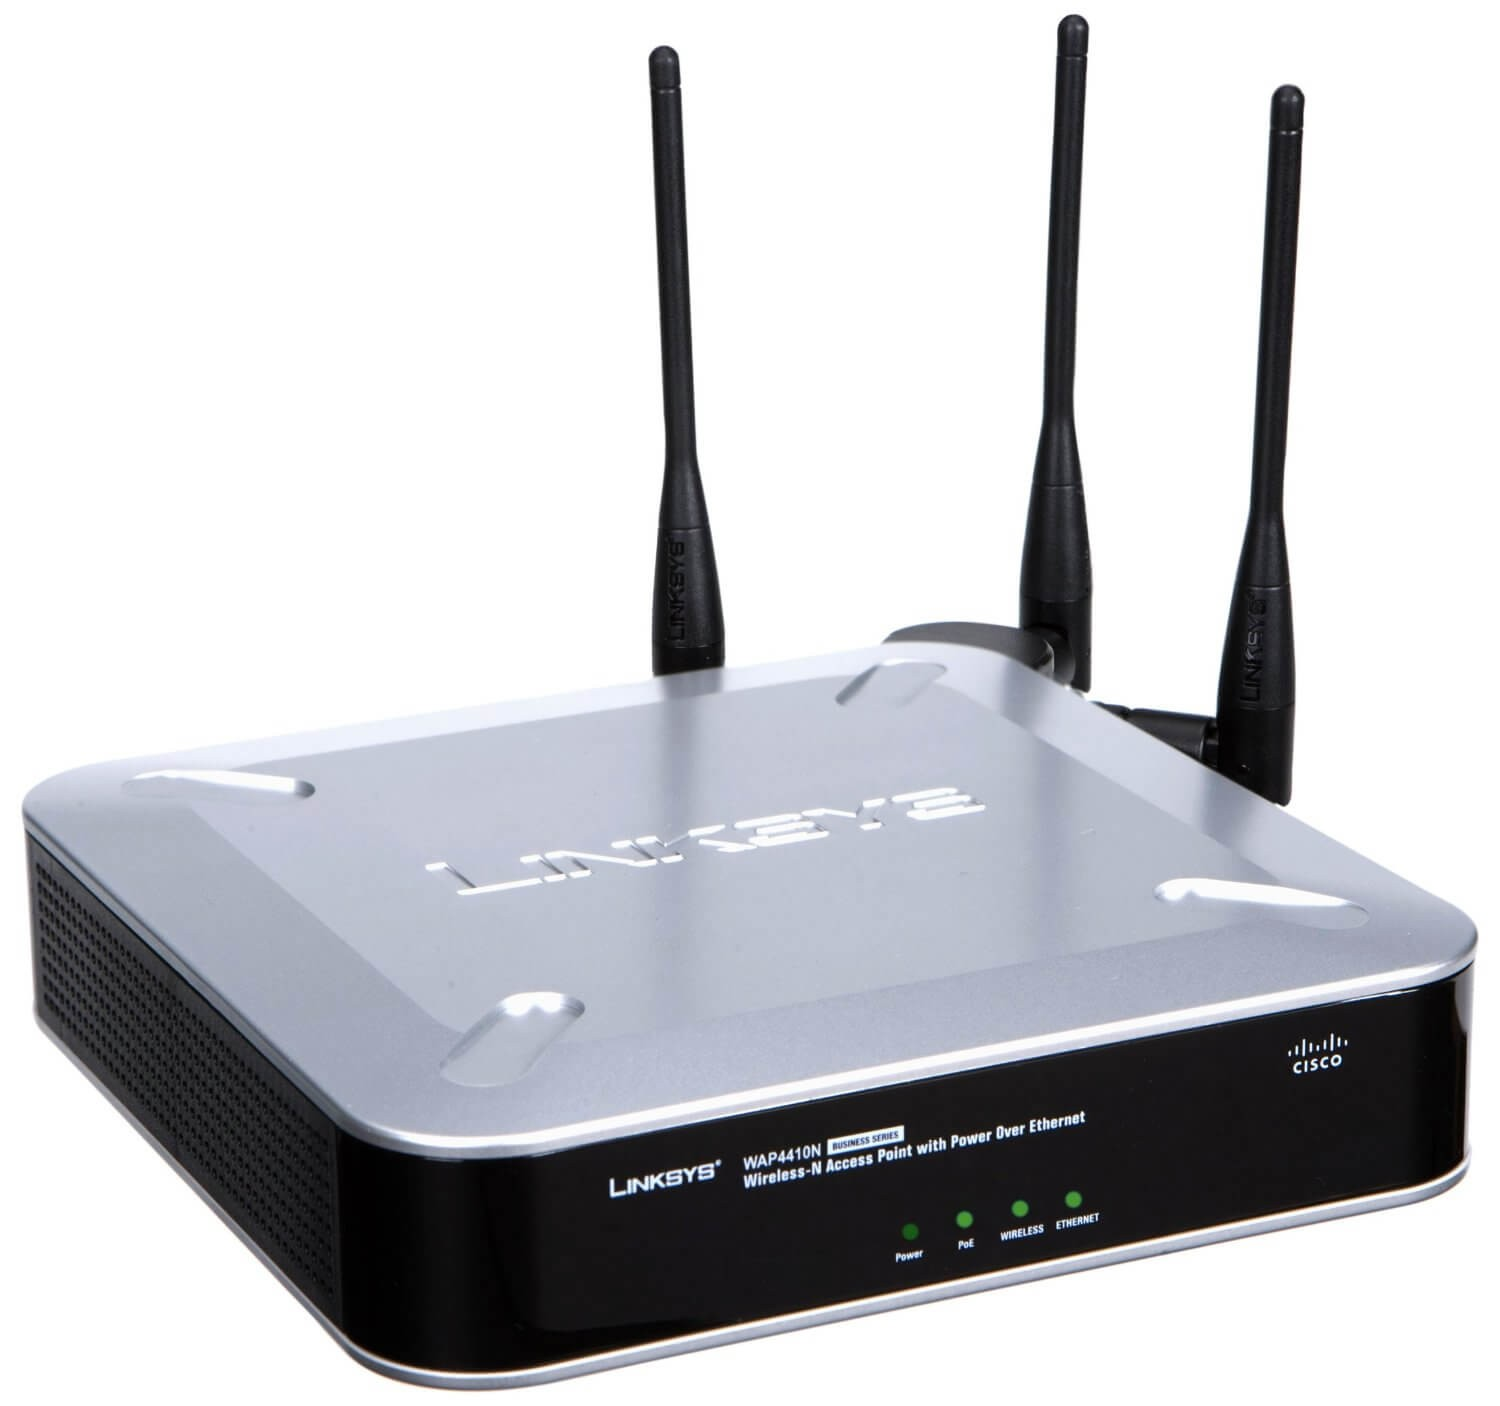 Cisco linksys wireless-g router password reset